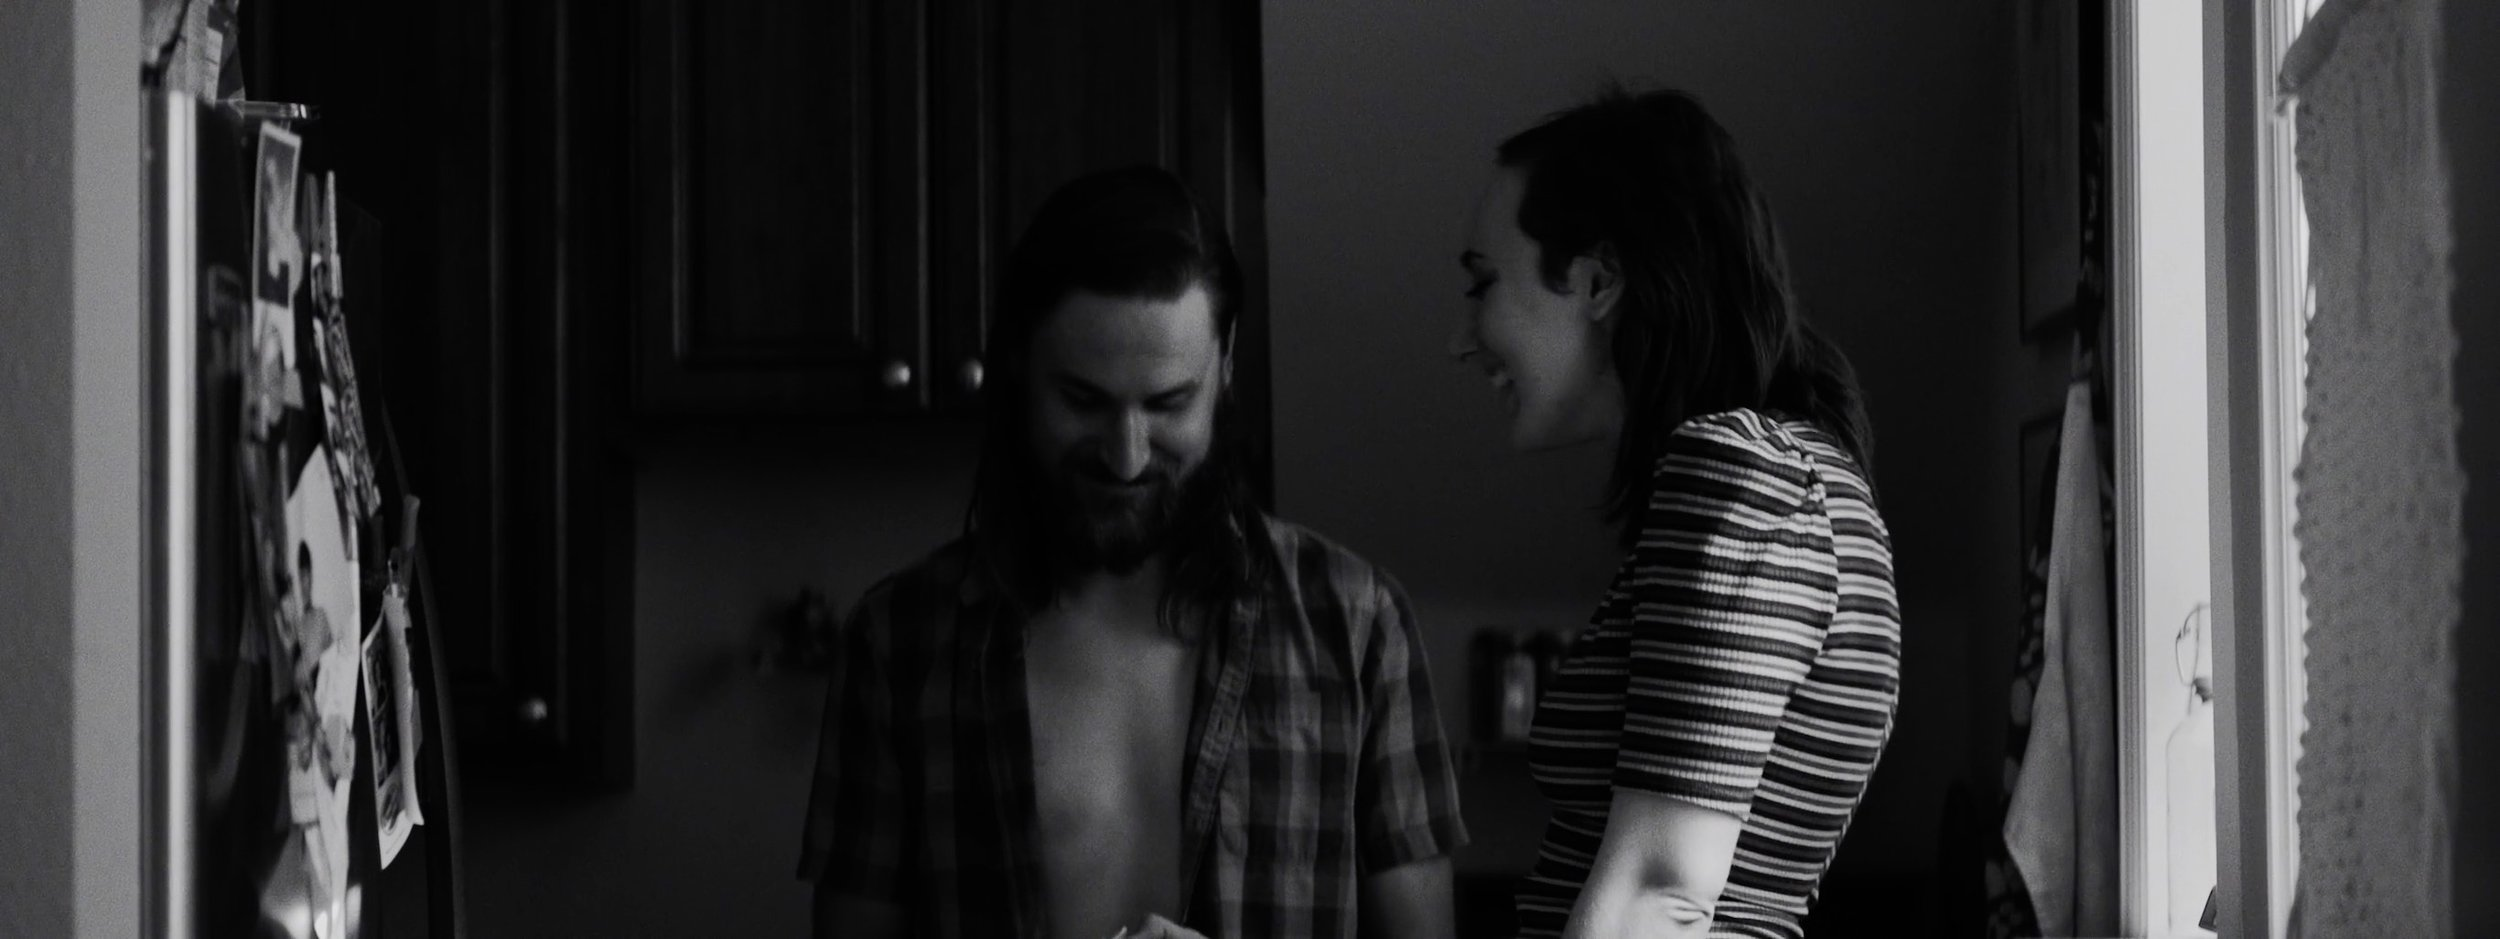 A couple experiments with opening up their relationship to other people. A film by Joshua LaBure & Zachary Gutierrez.